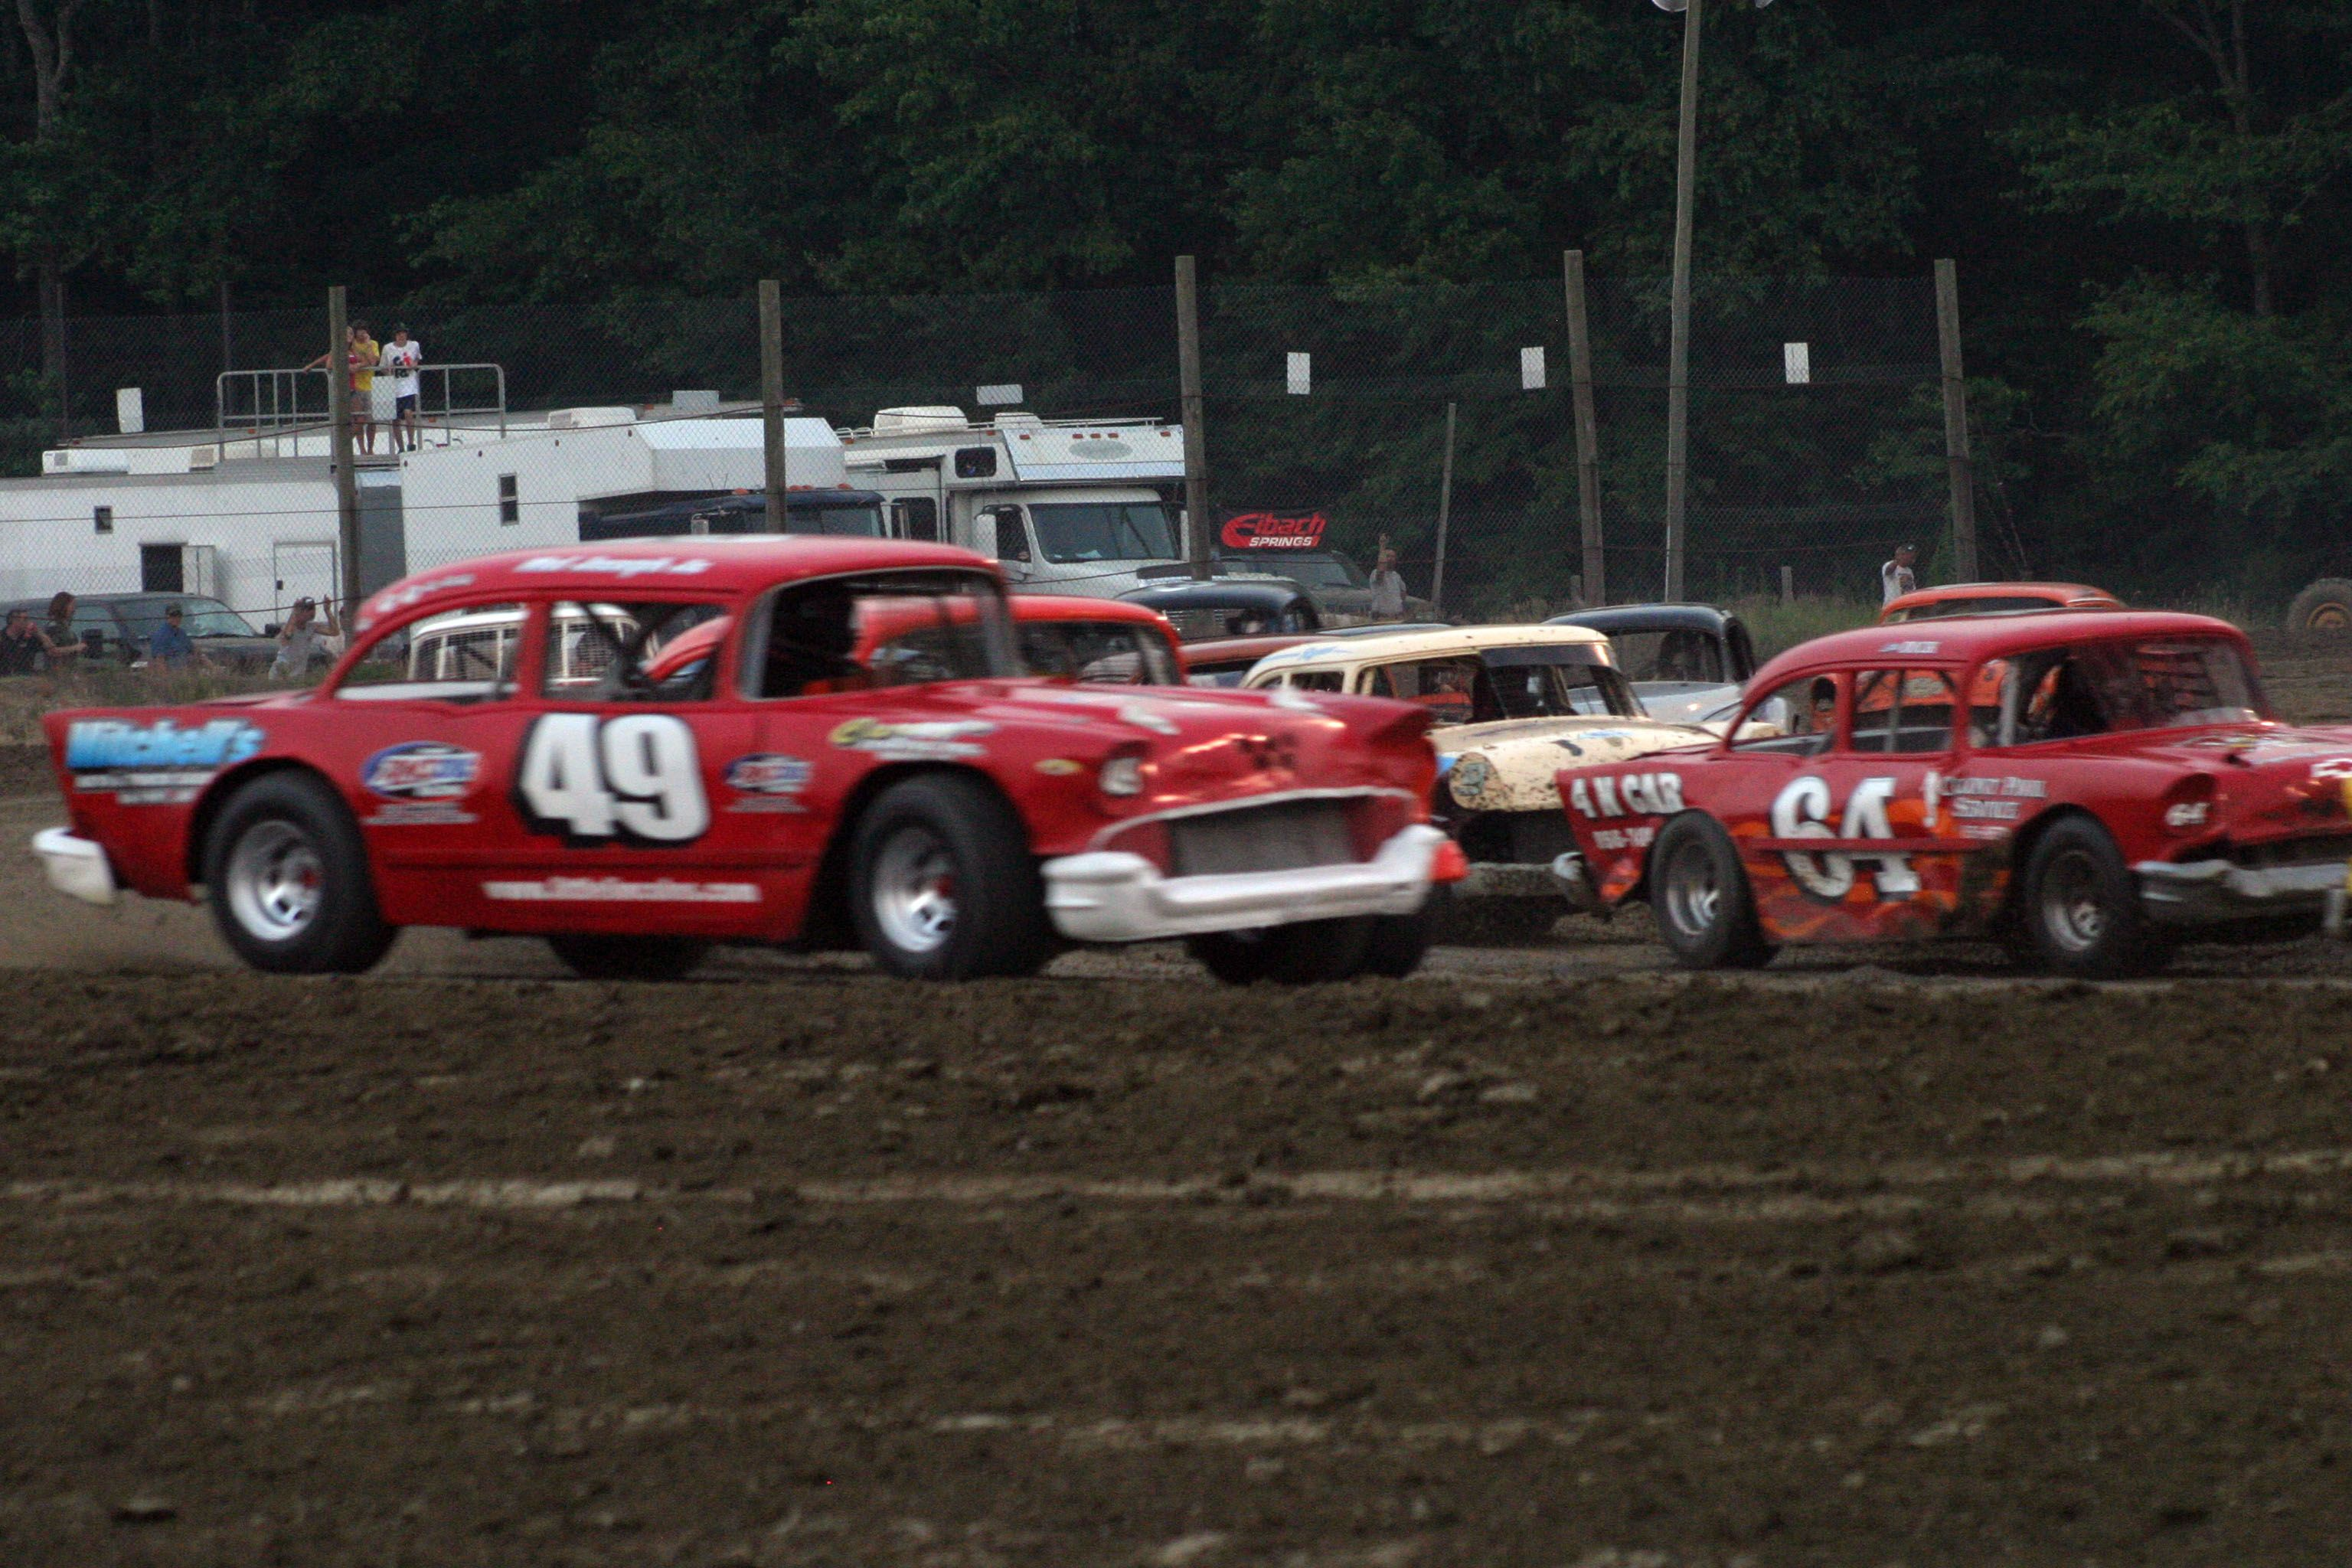 Dirt Track Race Cars: Dirt Track Racing, Old Race